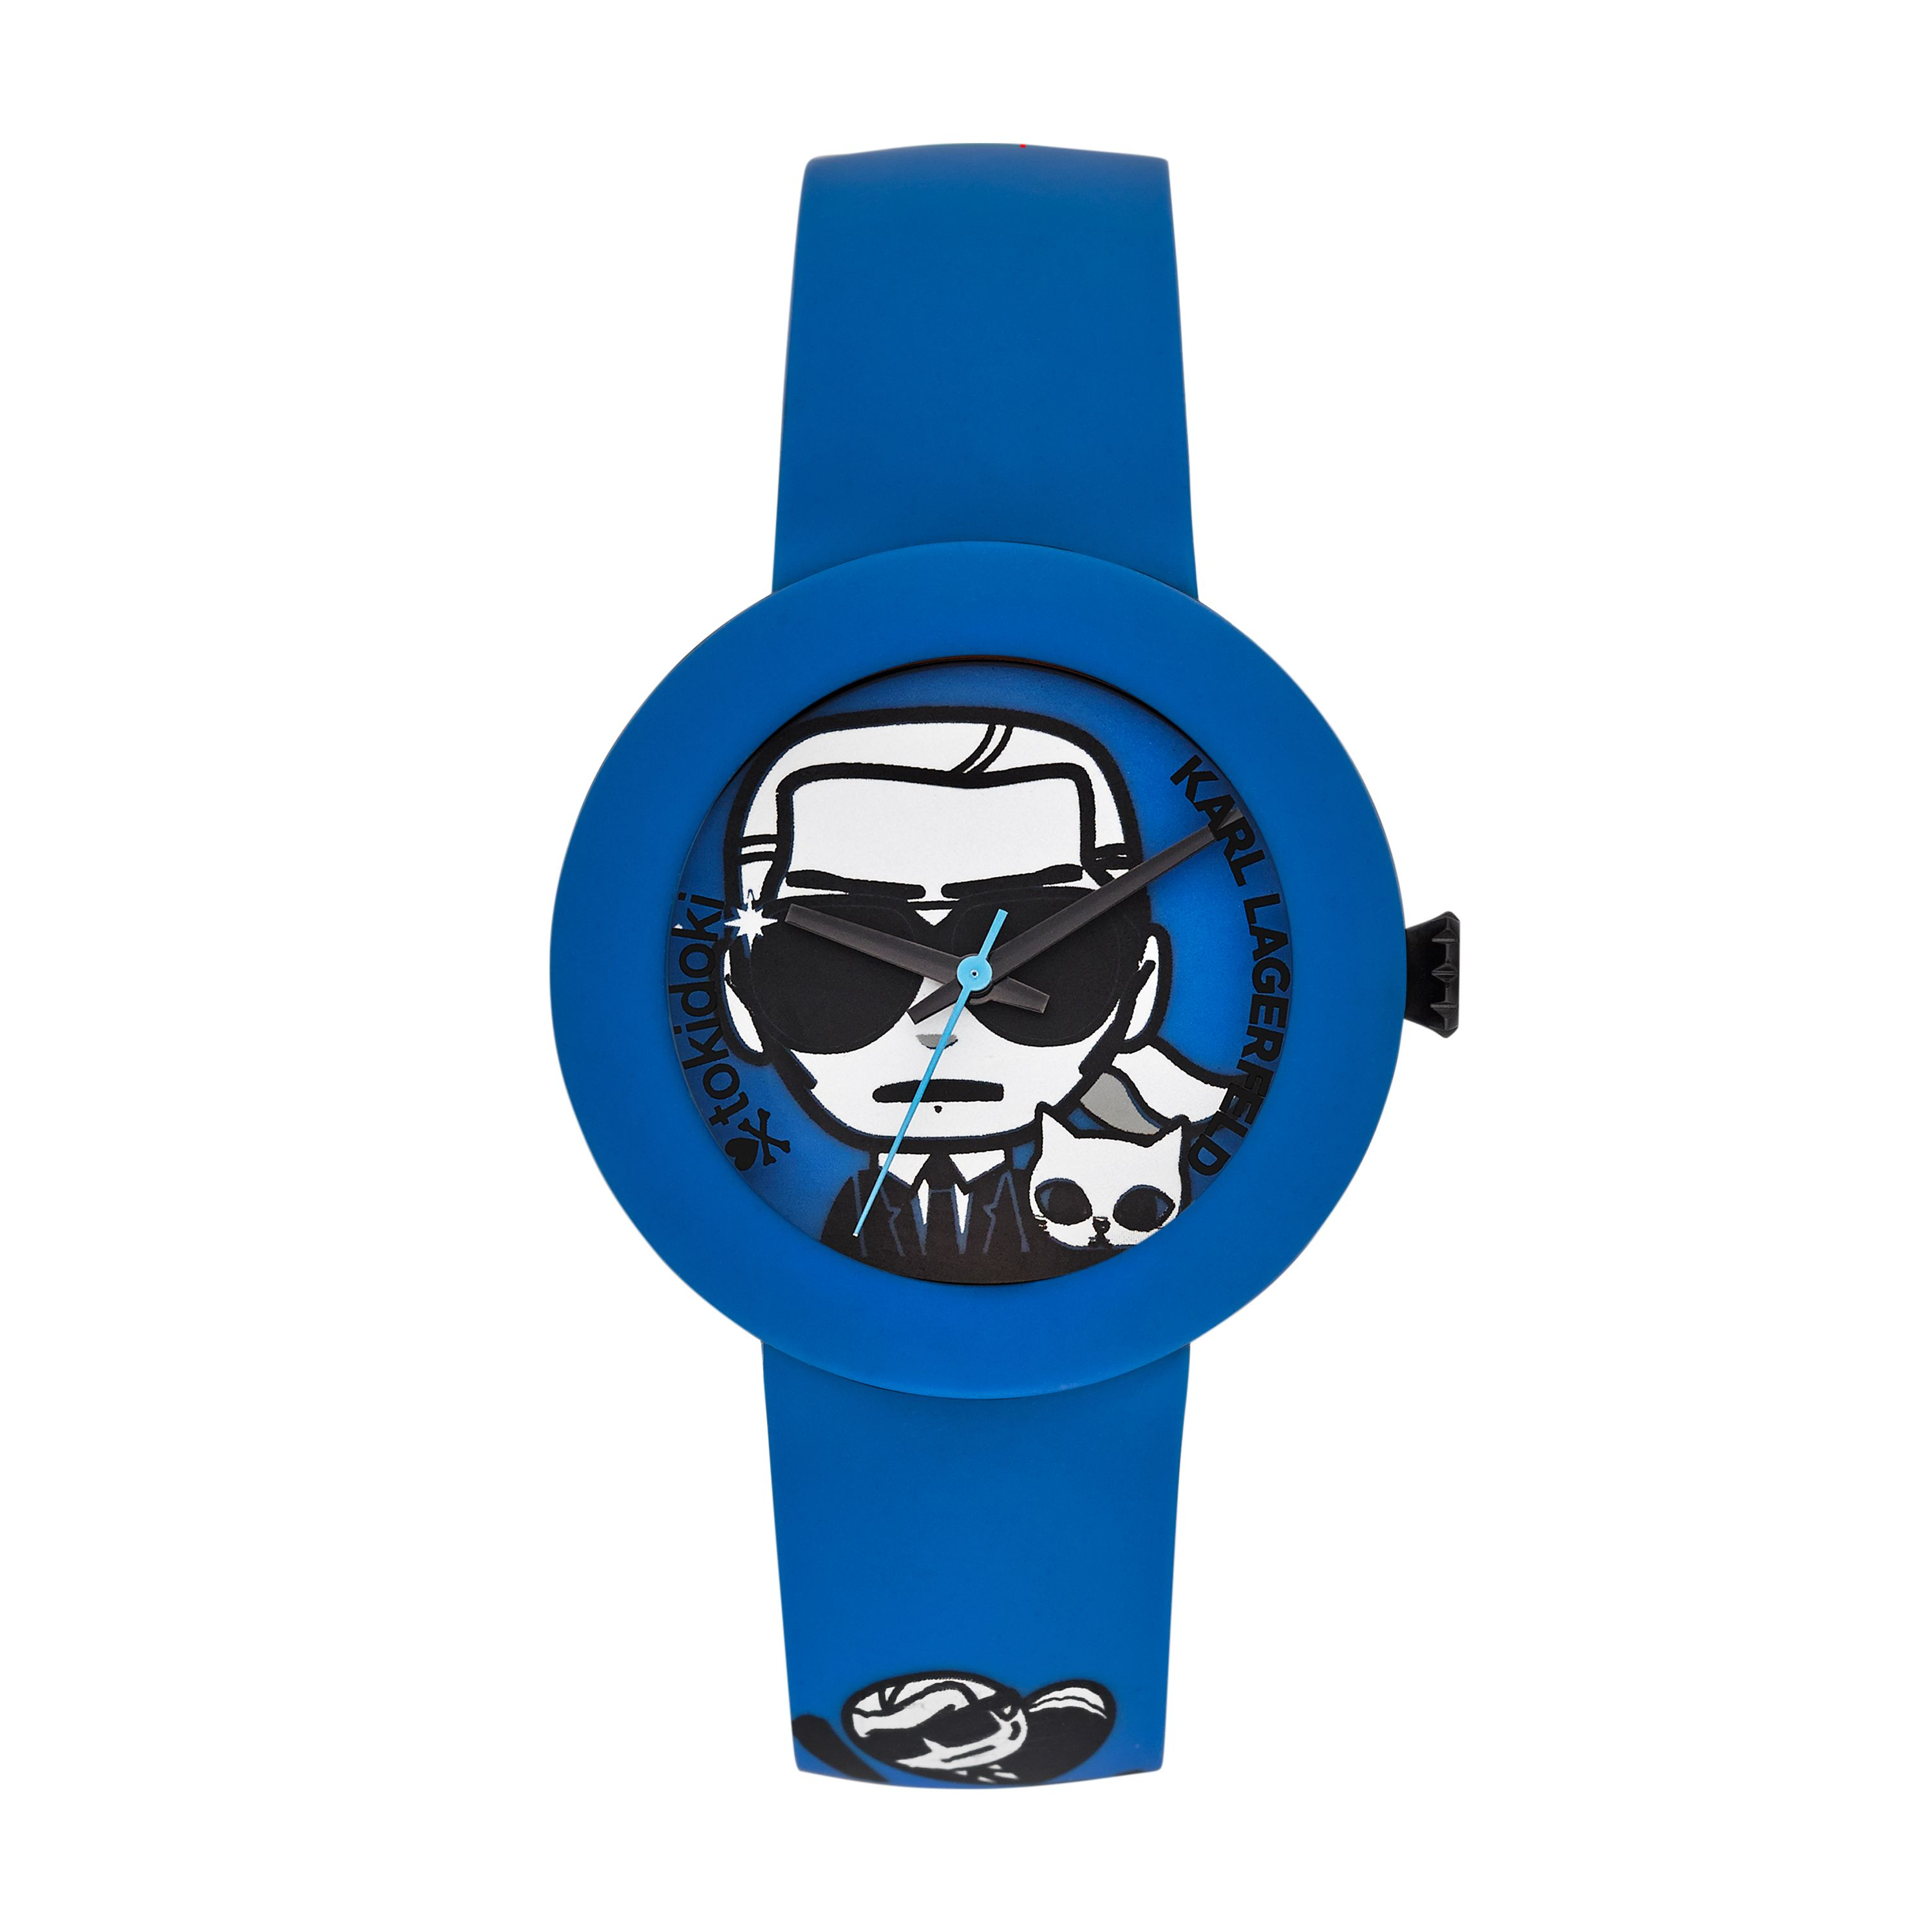 KL2212 EDGE Blue Silicone unisex watch